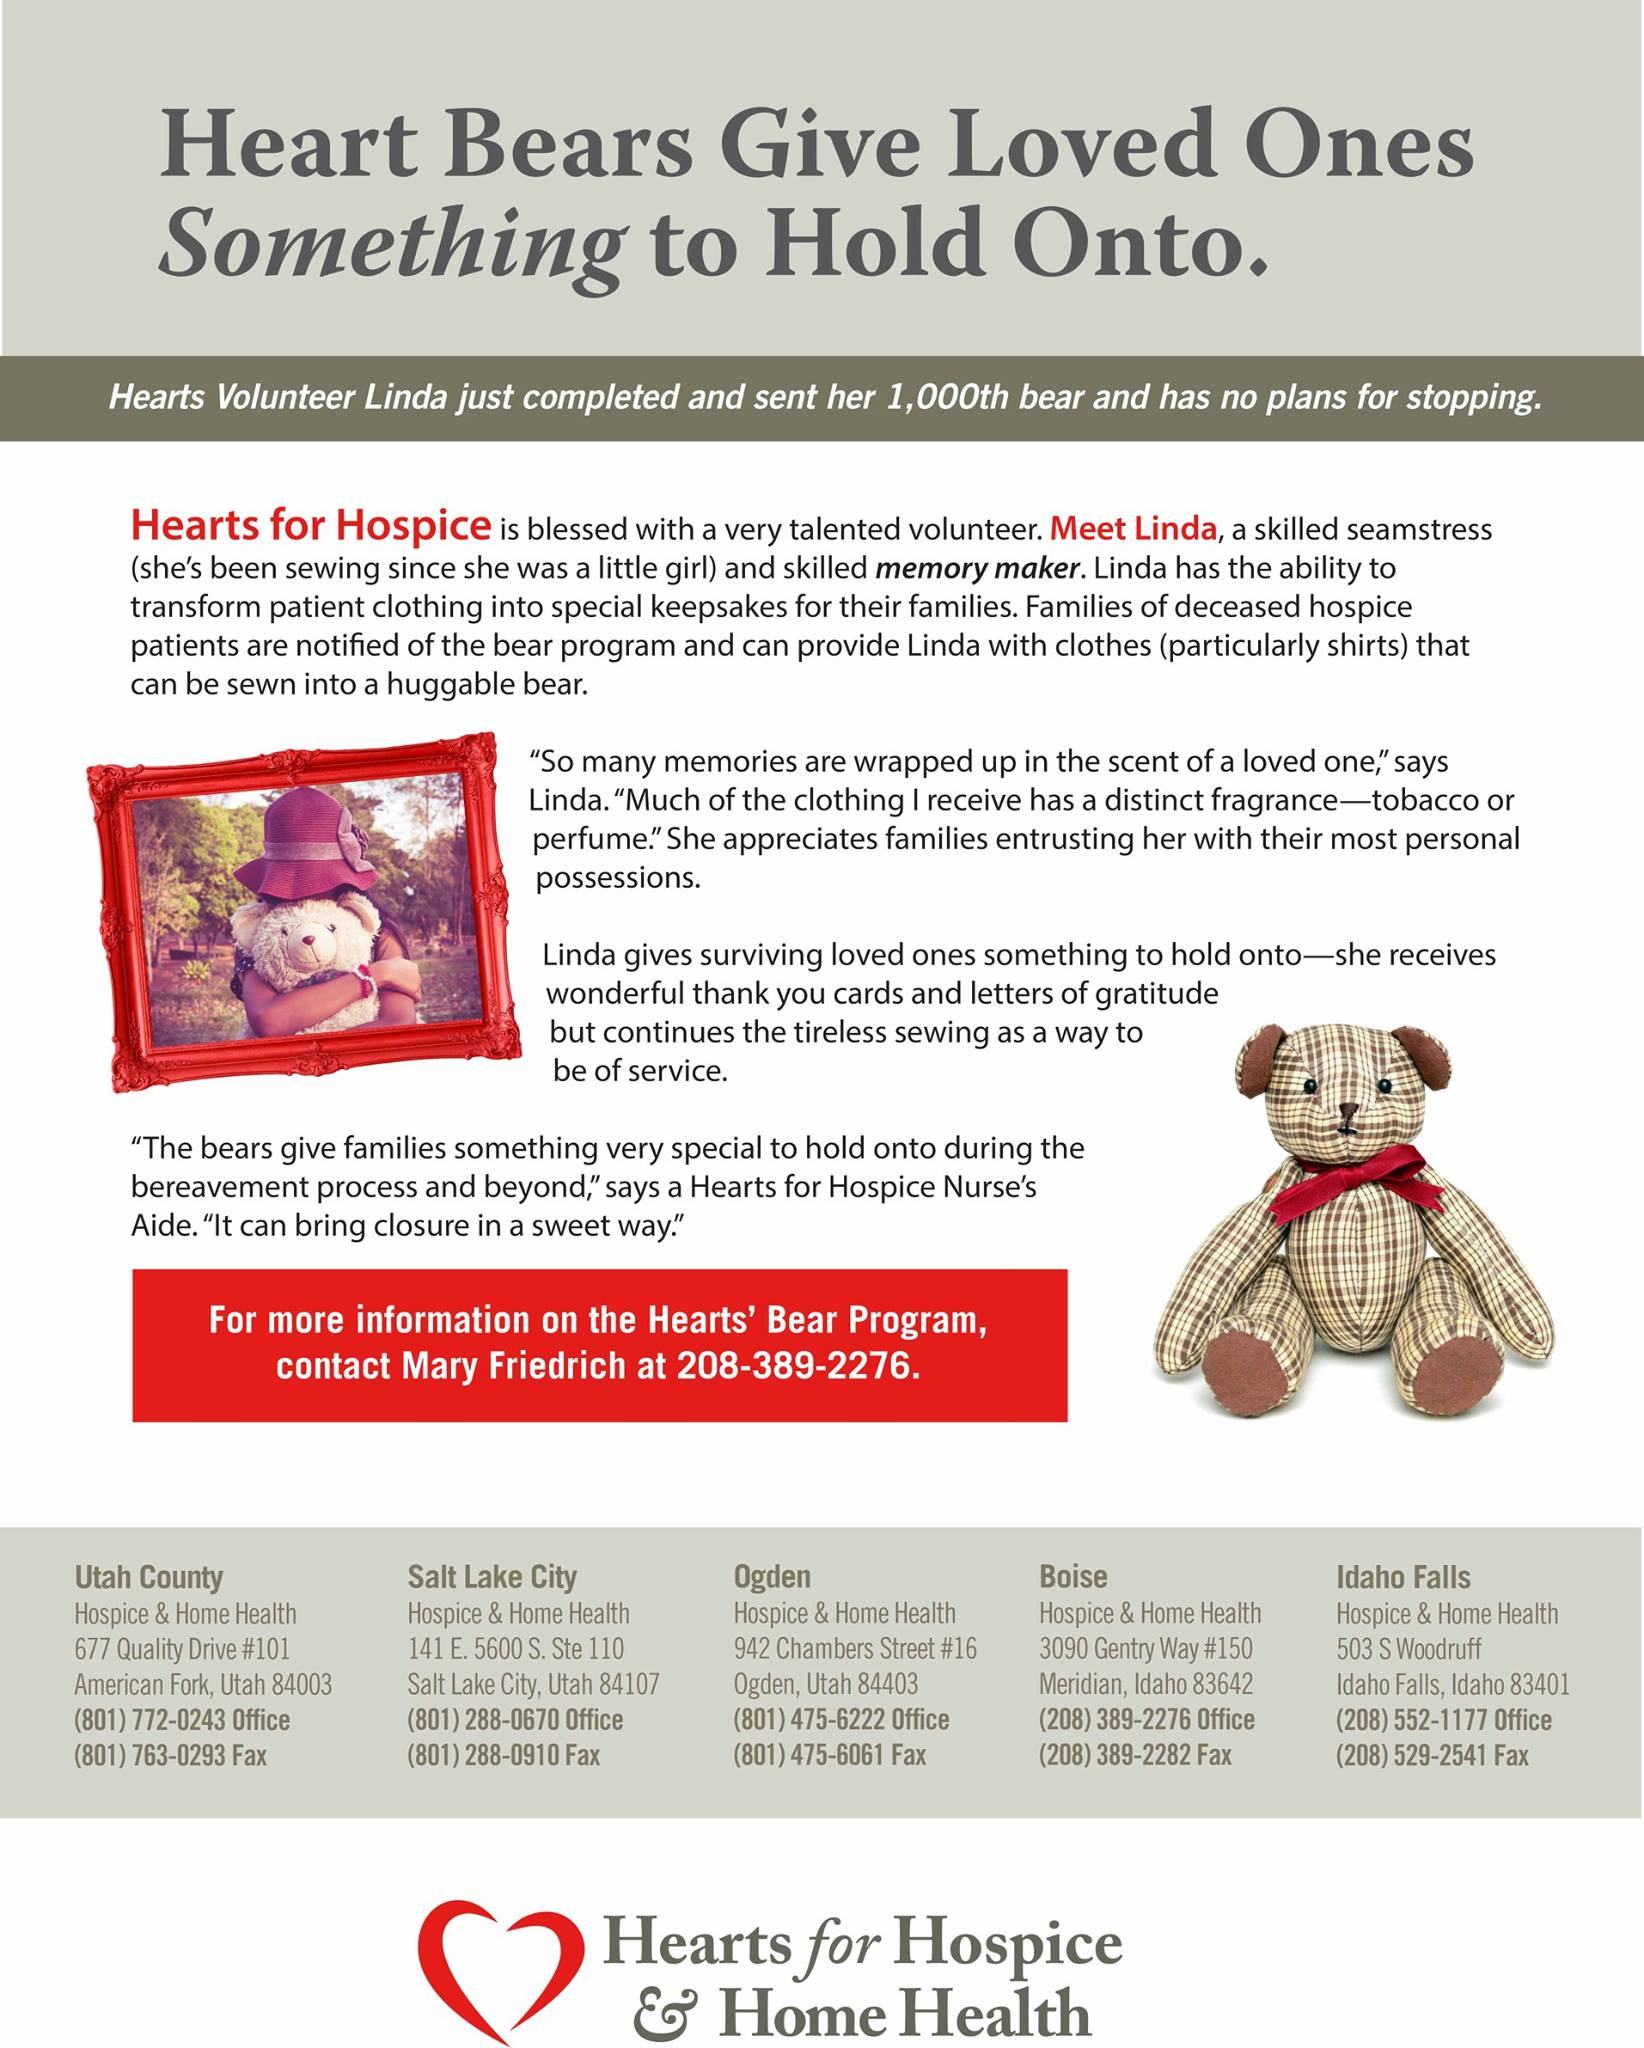 blog - hearts for hospice and home health